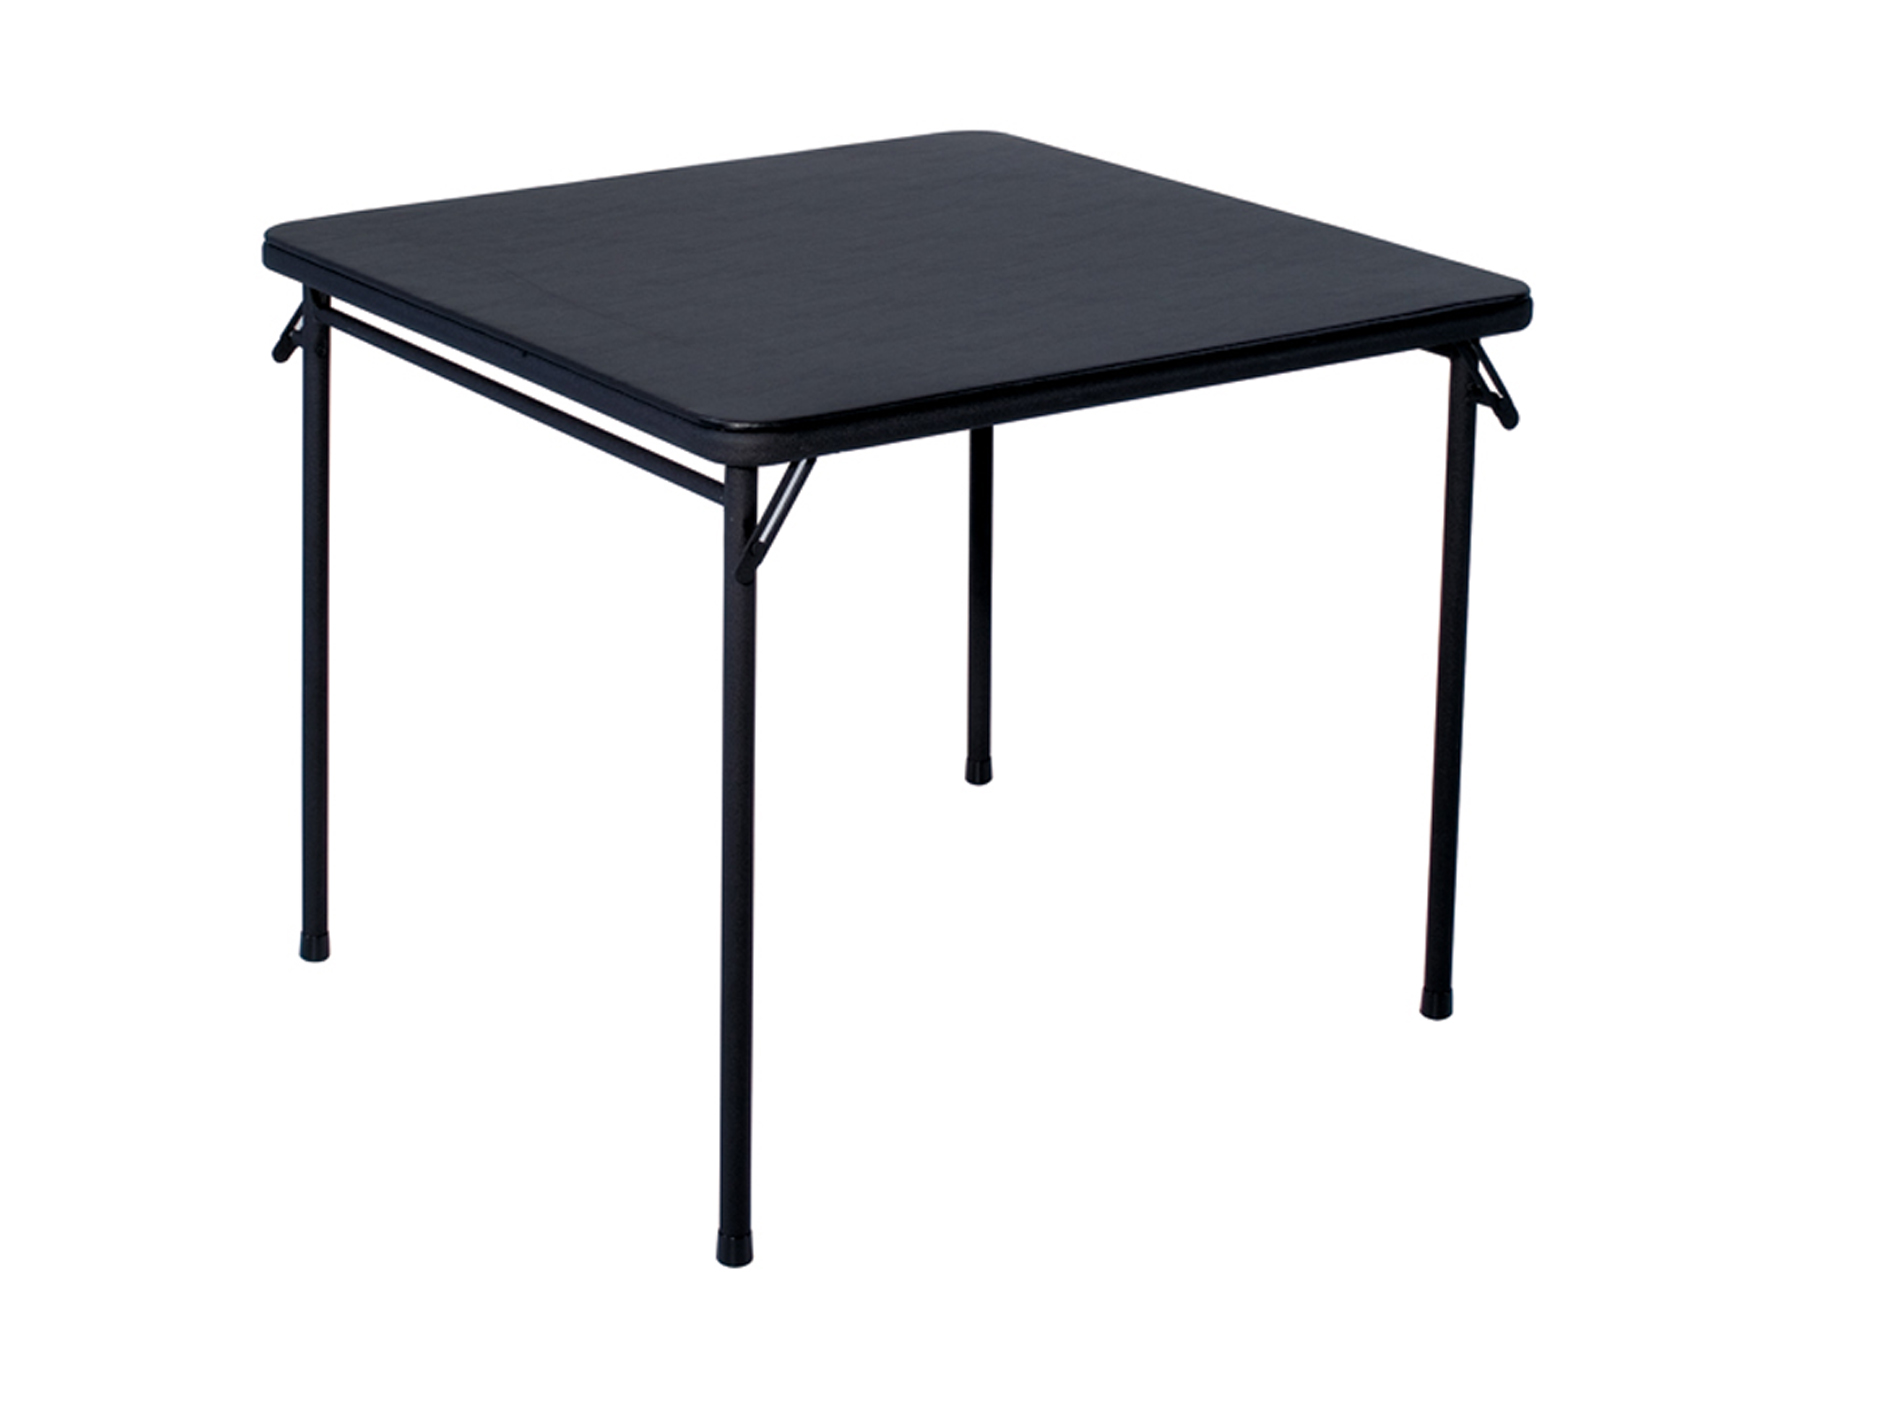 cosco home and office products 34 in a square folding table UCNQIVK